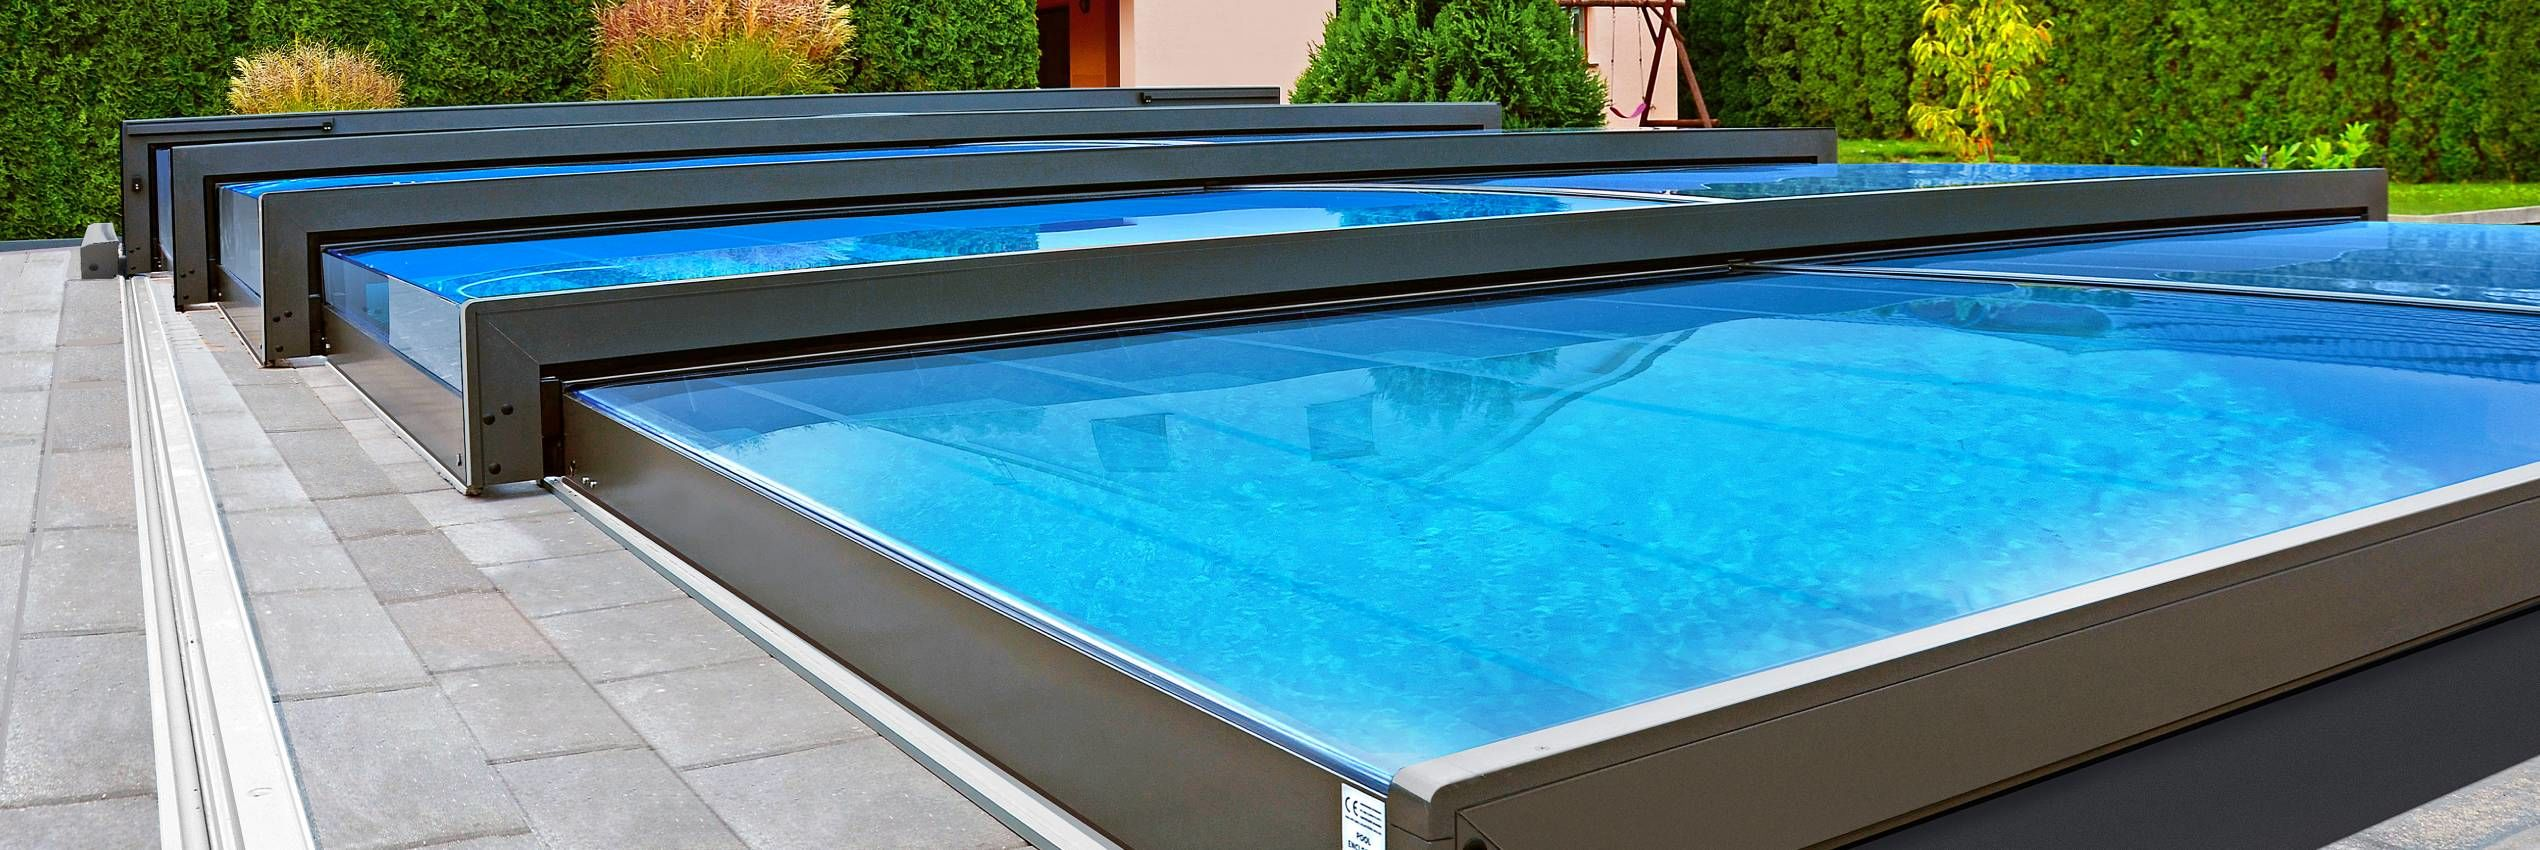 Motorized pool enclosure eChampion